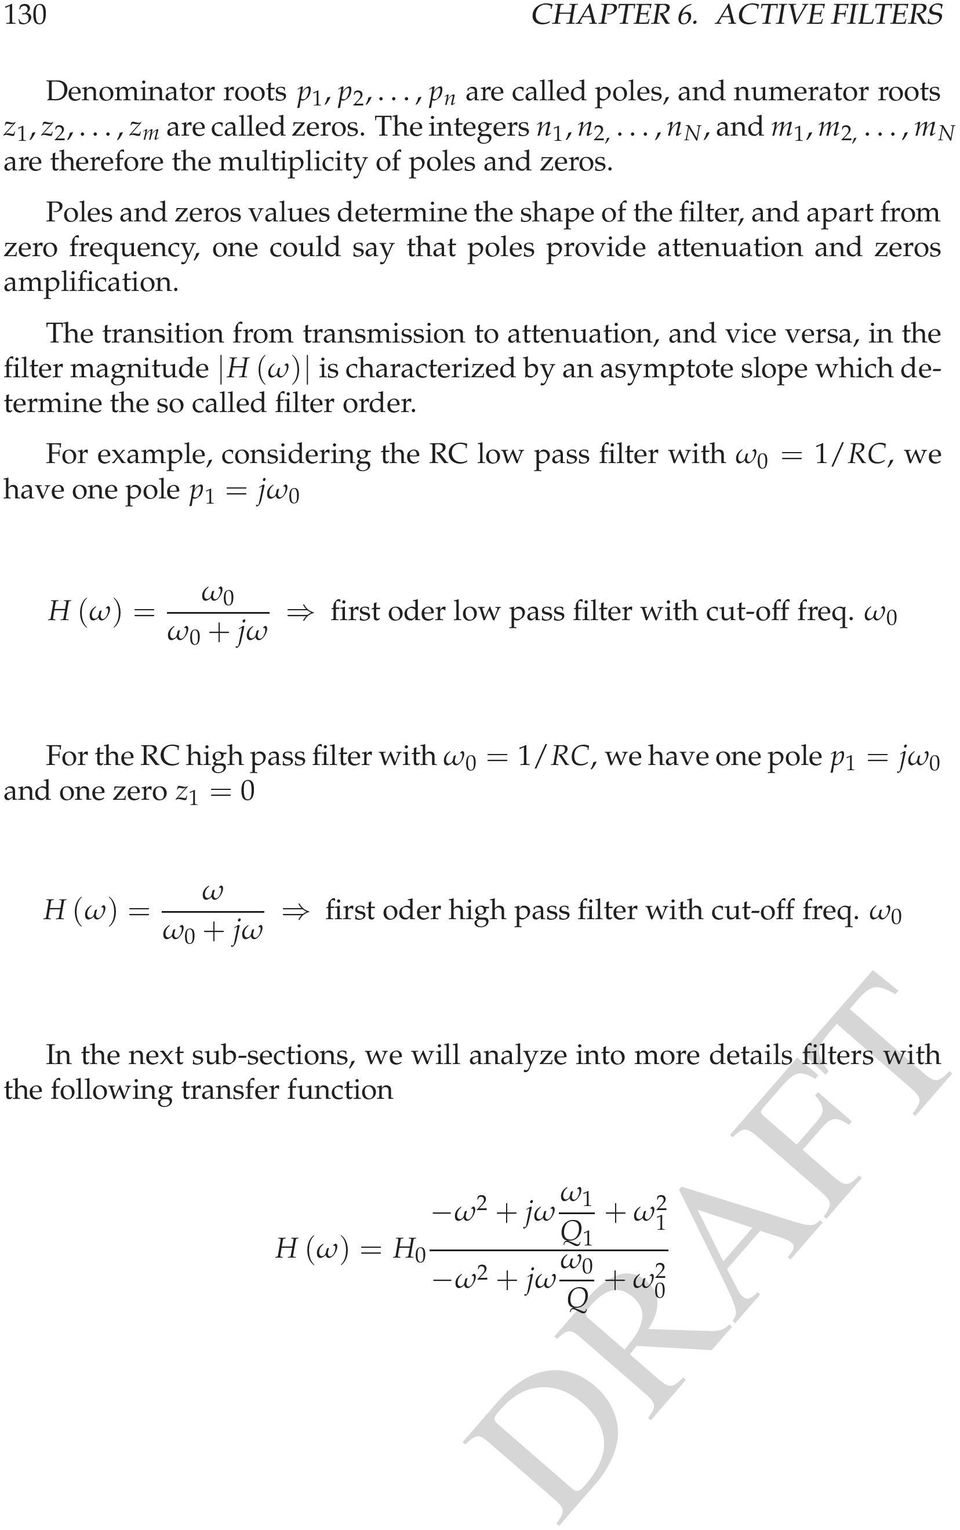 transition from transmission to attenuation, and vice versa, in the filter magnitude H(ω) is characterized by an asymptote slope which determine the so called filter order For example, considering